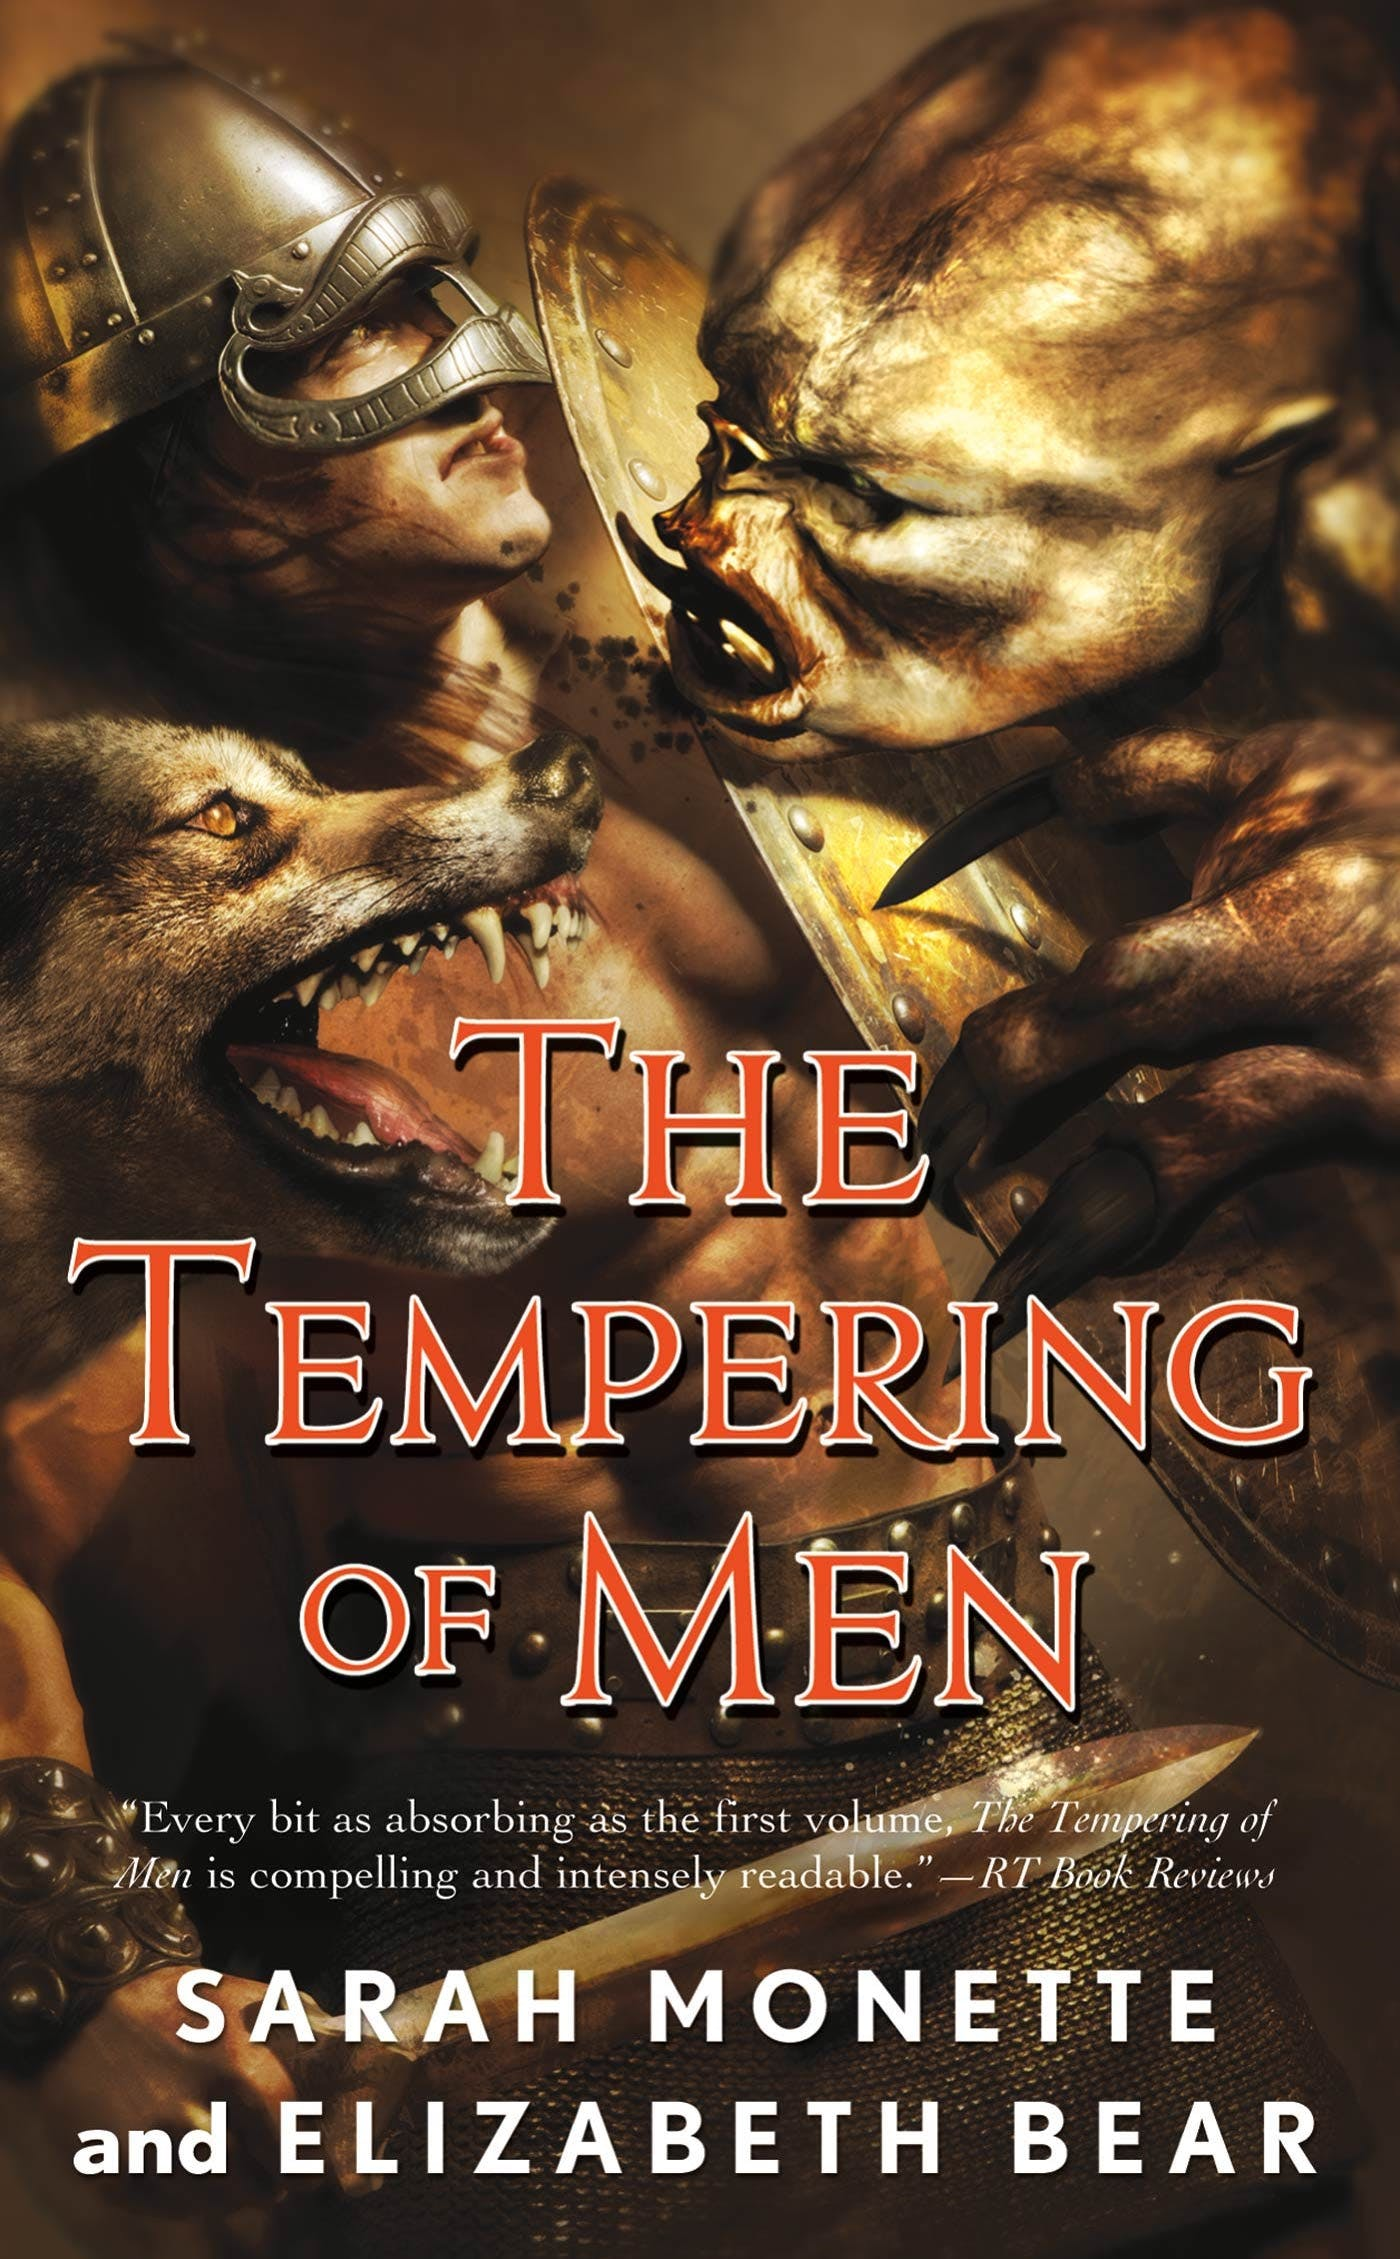 Image of The Tempering of Men